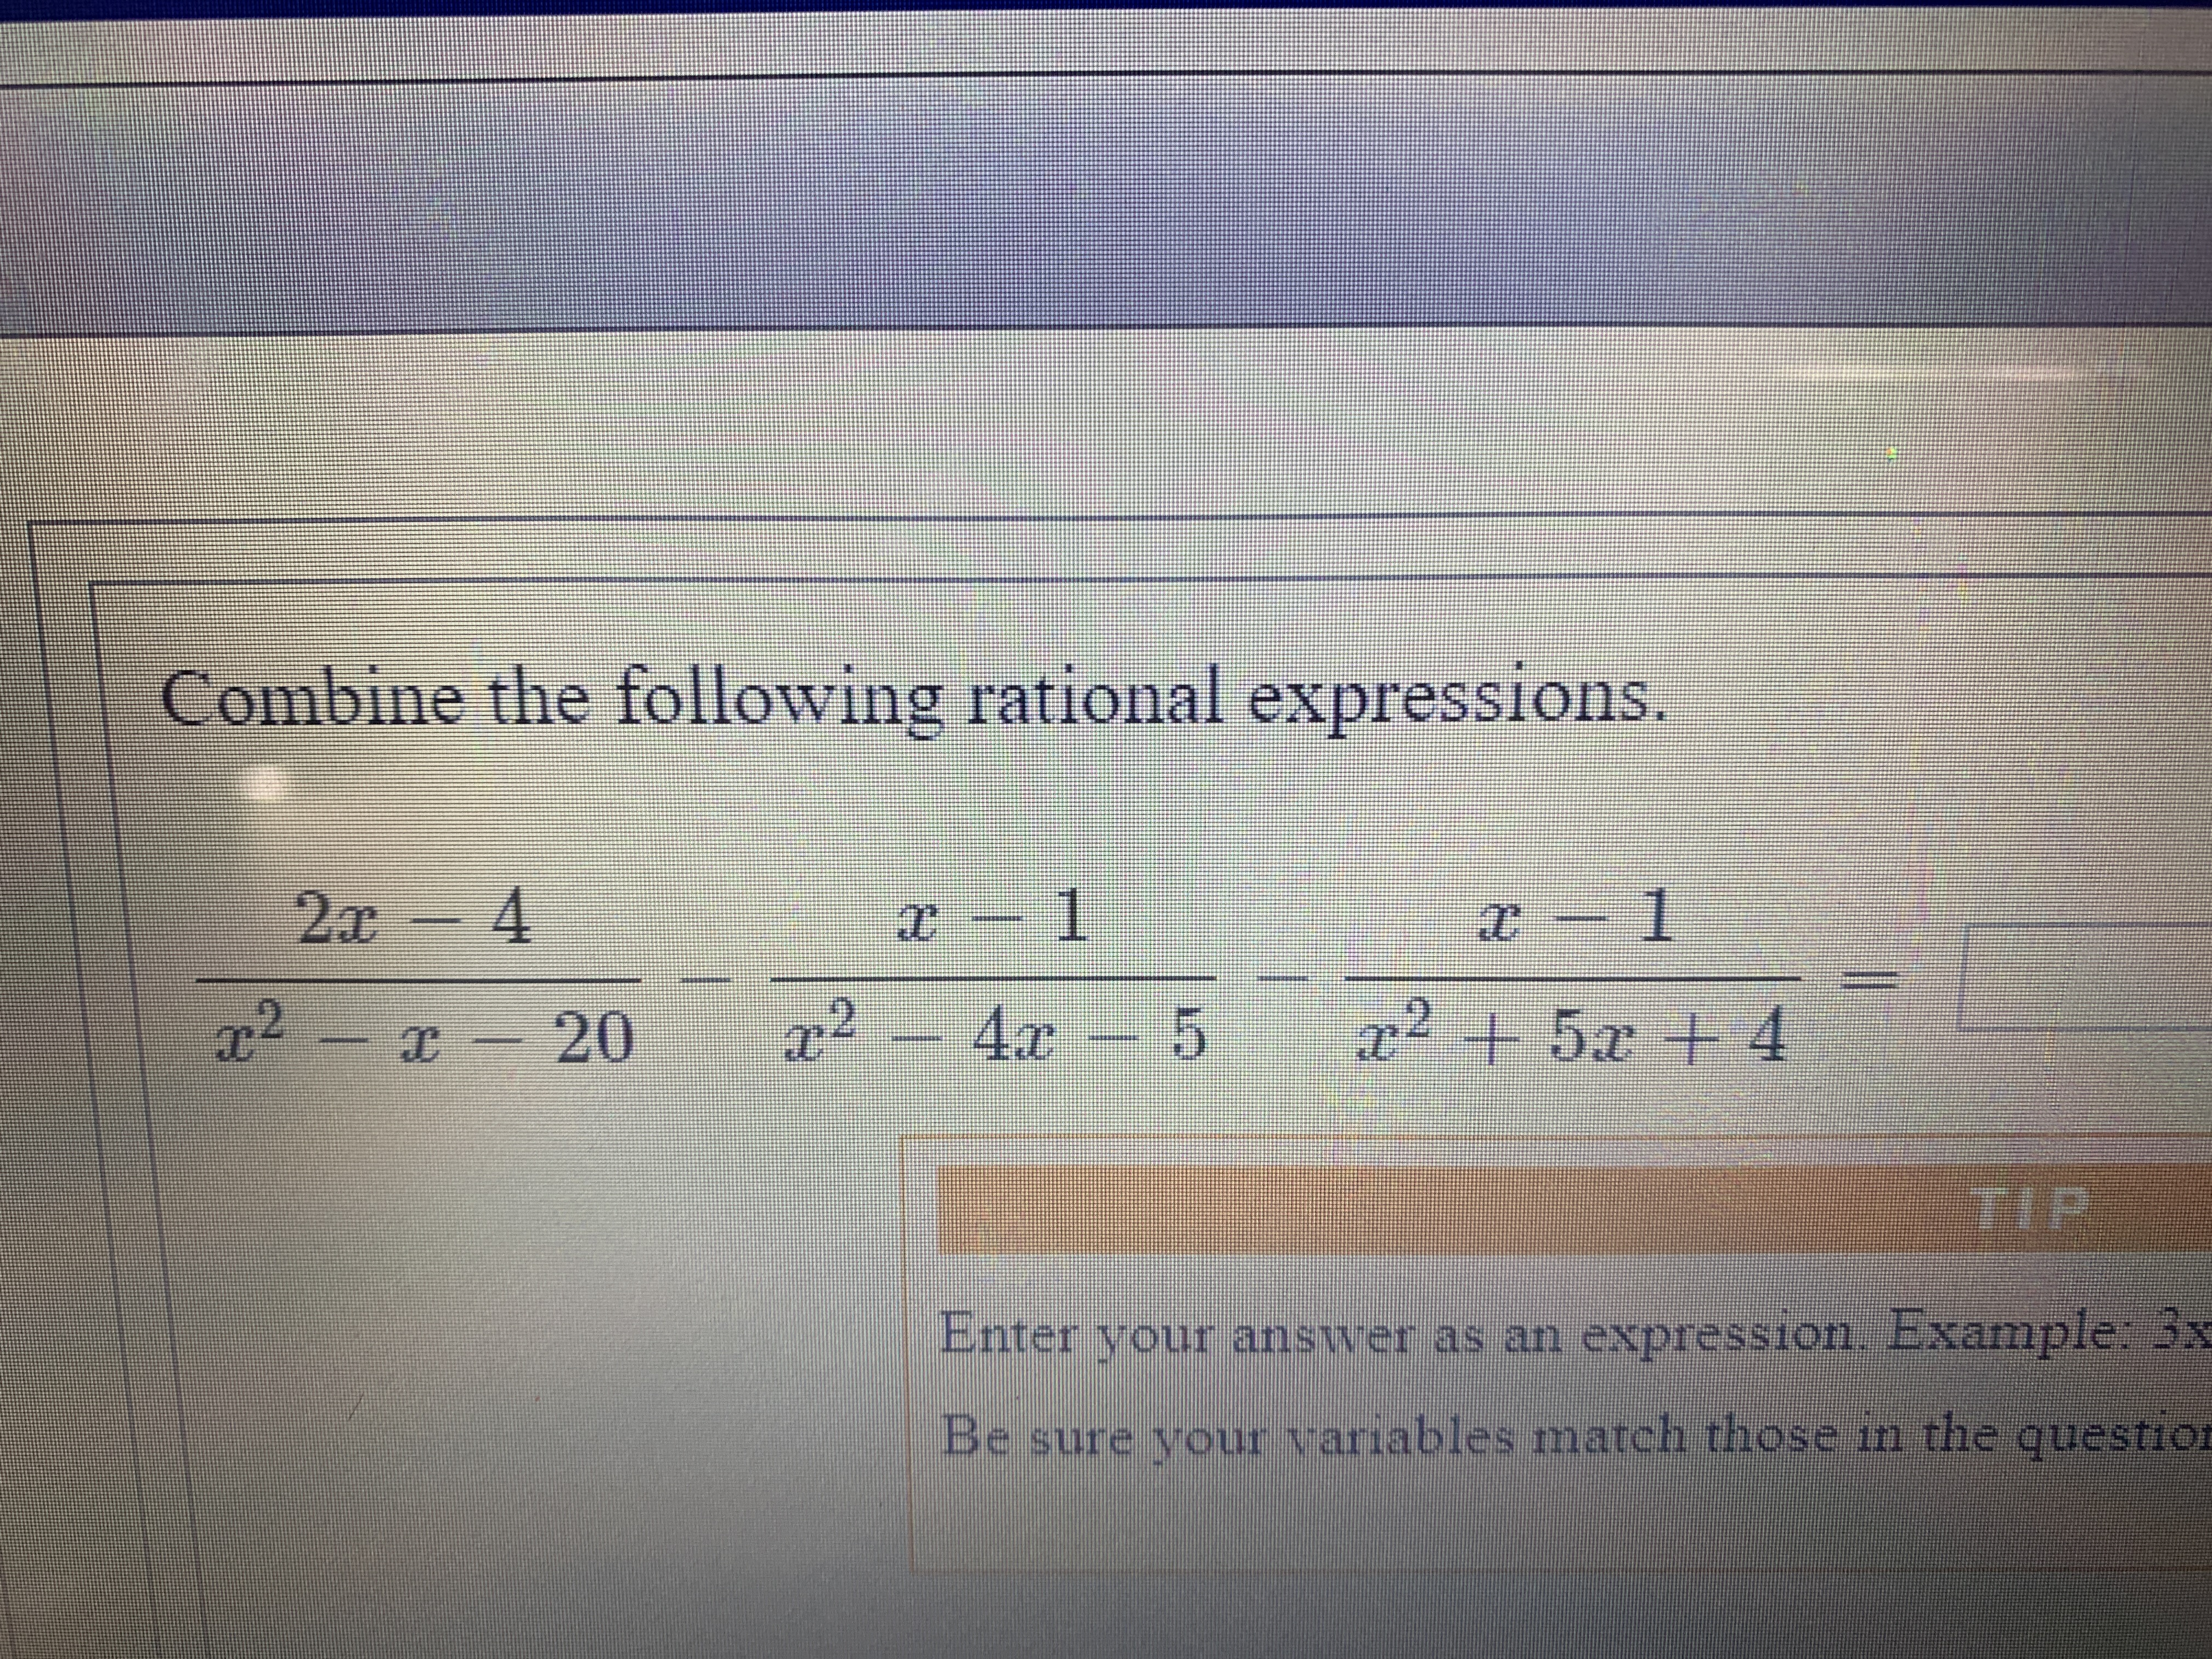 Combine the following rational expressions. 1 2x - 4 1 r2 x20 2+5 +4 a2- 4x- 5 TIP Enter your answer as an expression Example: 33 Be sure your variables match those tn the questior